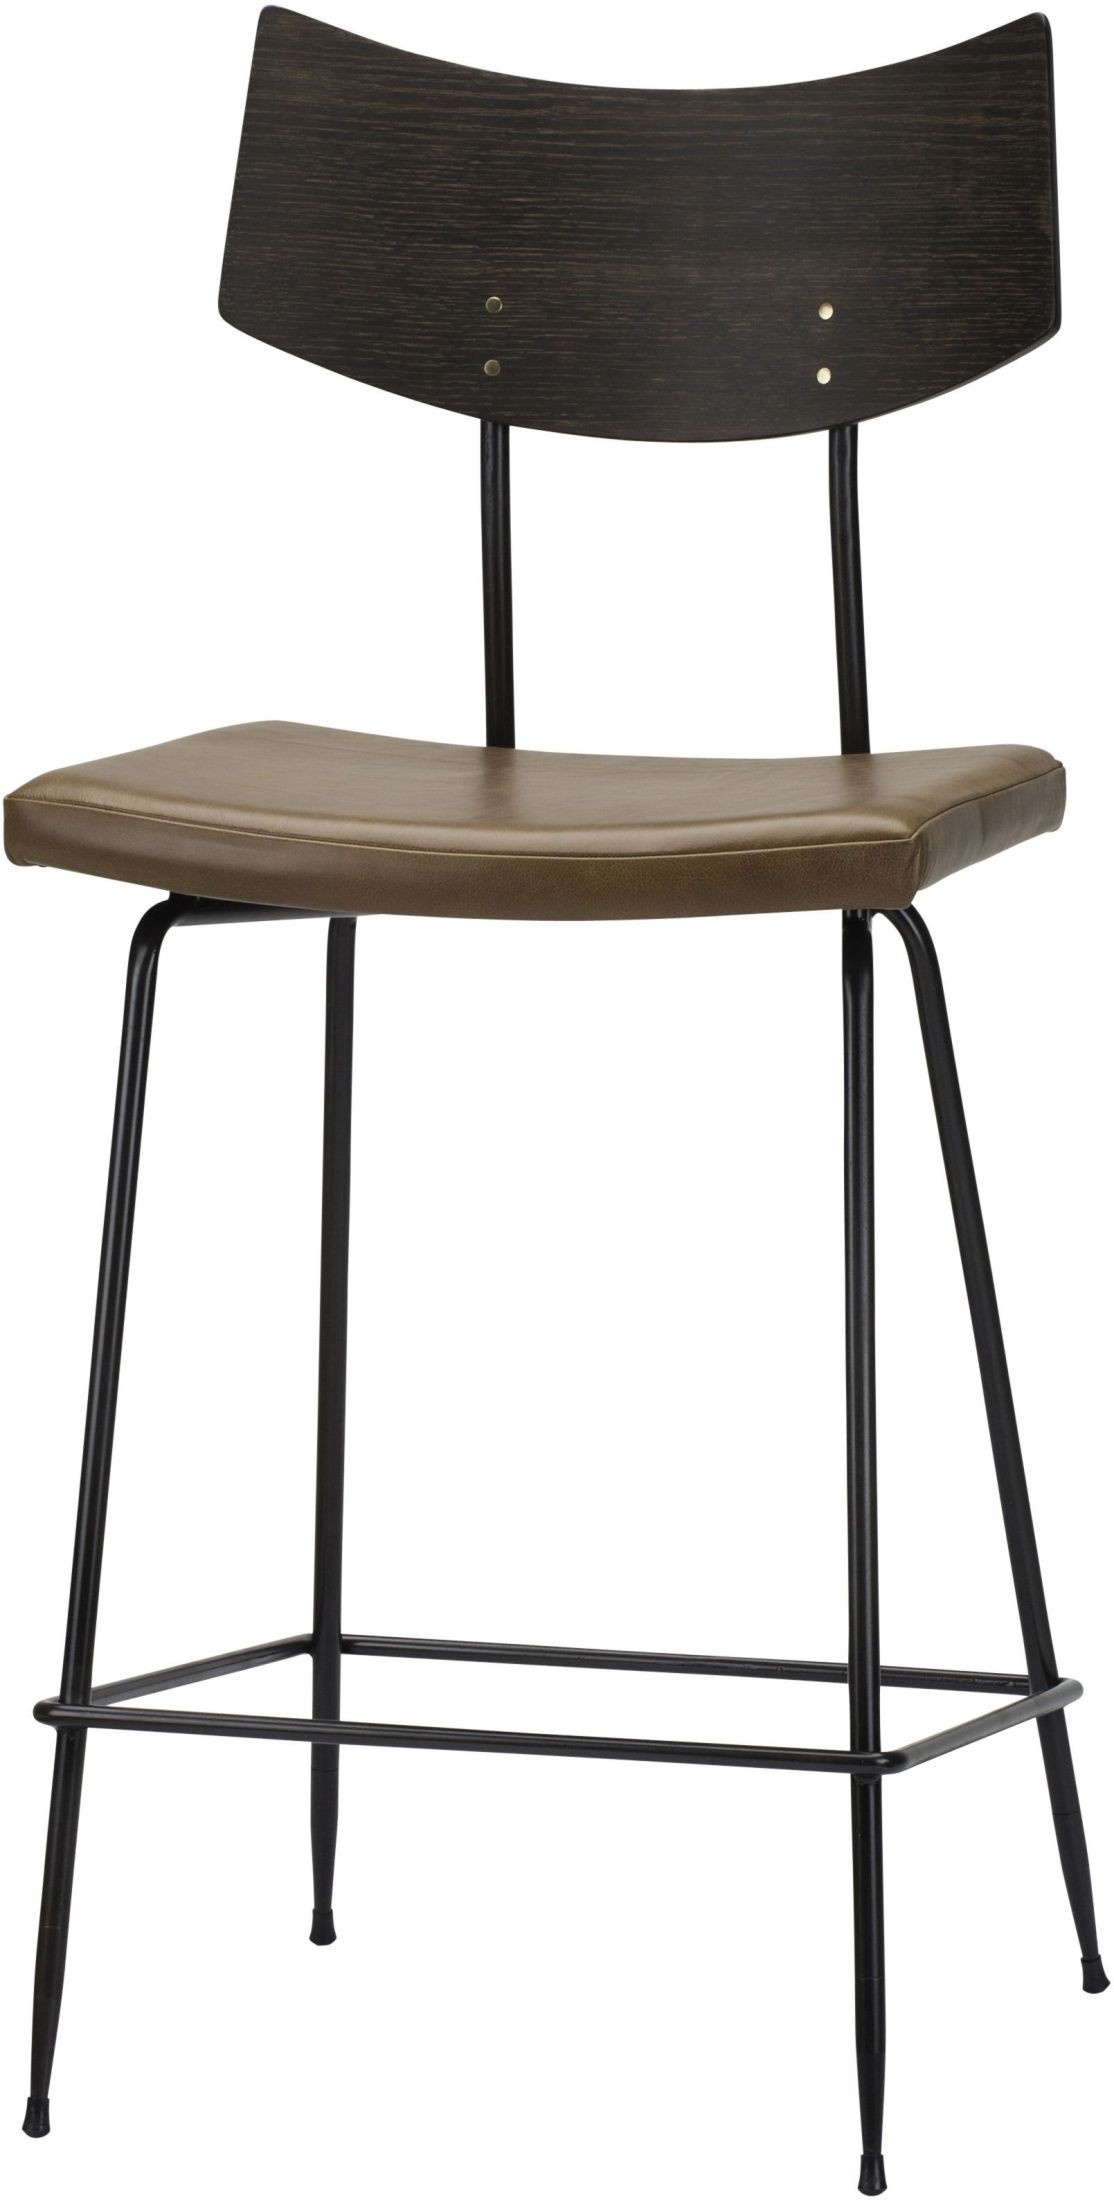 Soli Caramel Counter Stool from Nuevo Coleman Furniture : hgsr685hr from colemanfurniture.com size 1114 x 2200 jpeg 168kB